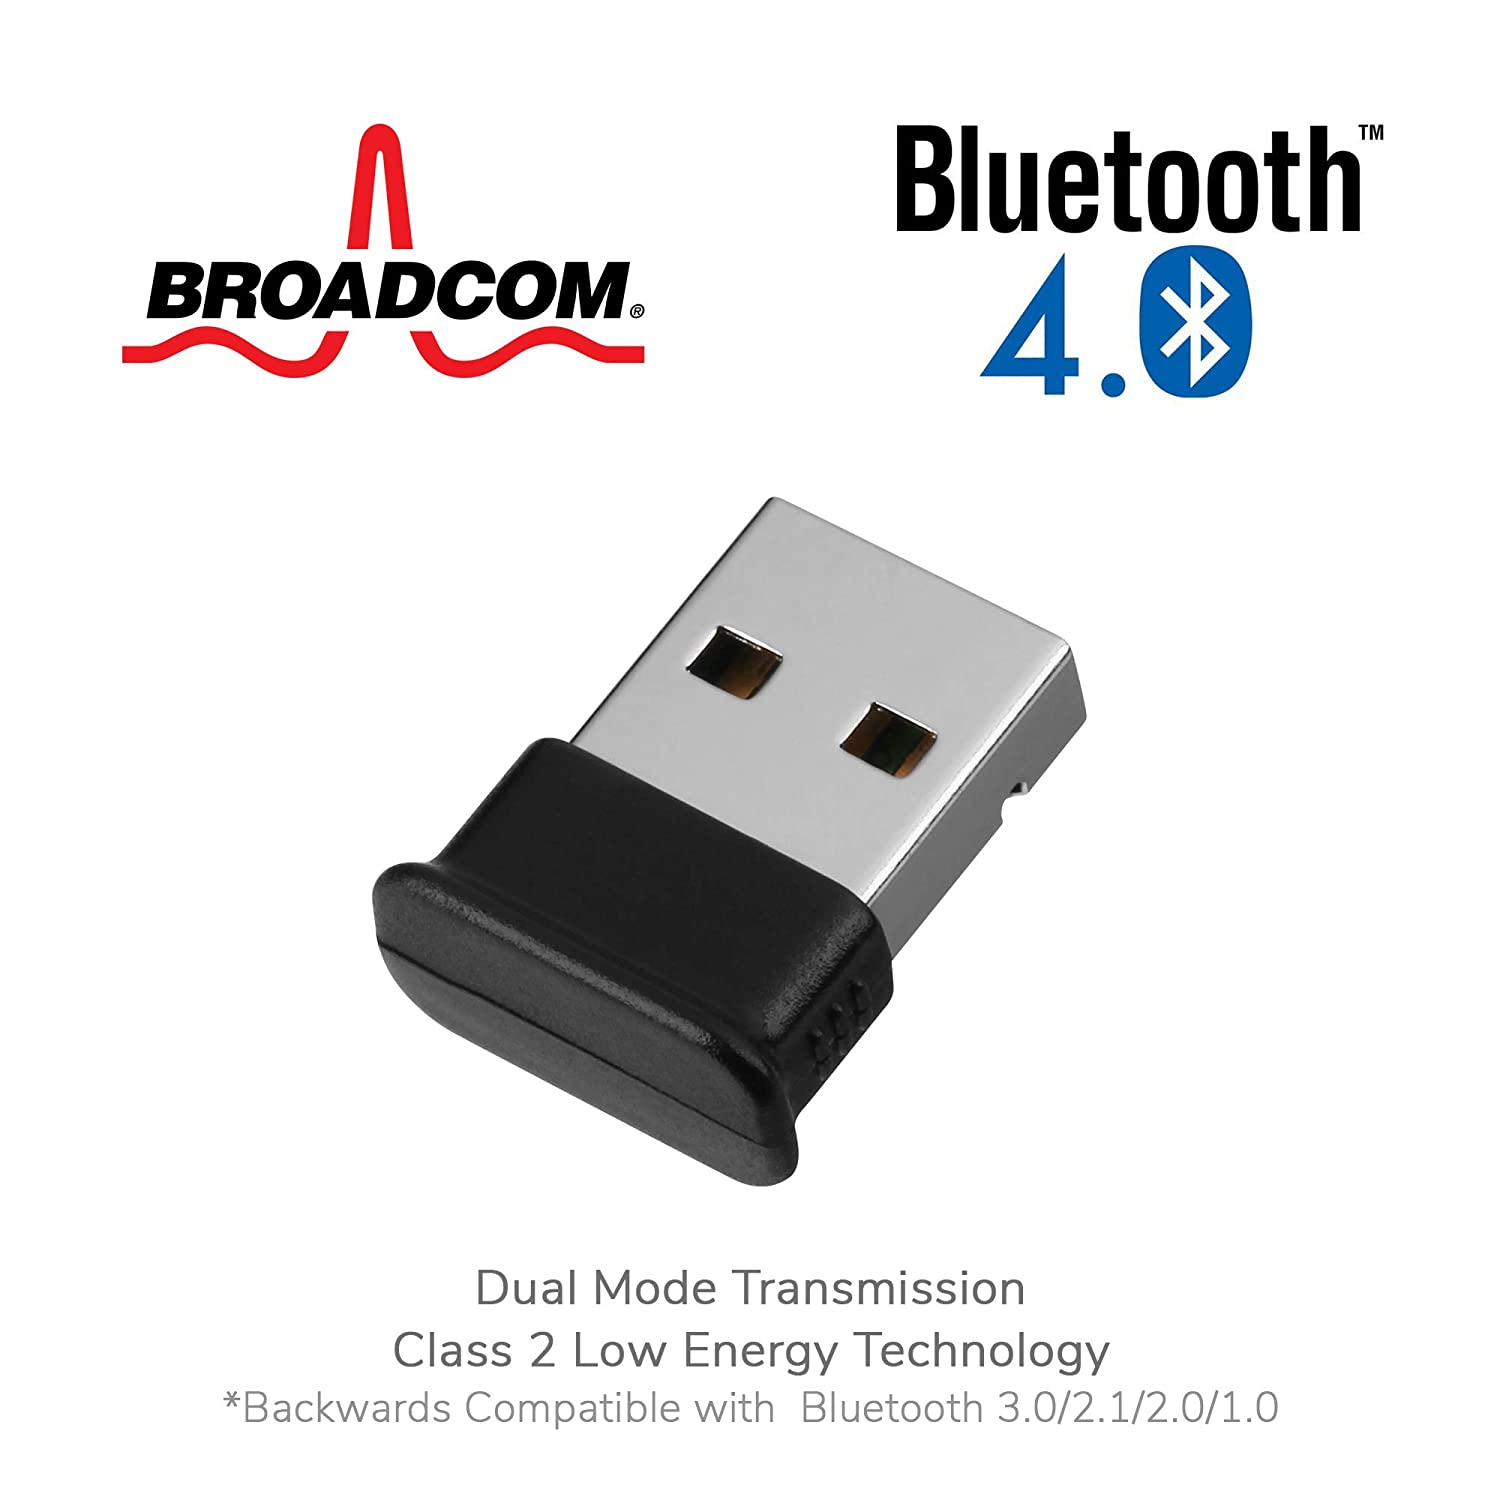 DOWNLOAD DRIVER: WIDCOMM CSR USB BLUETOOTH DEVICE